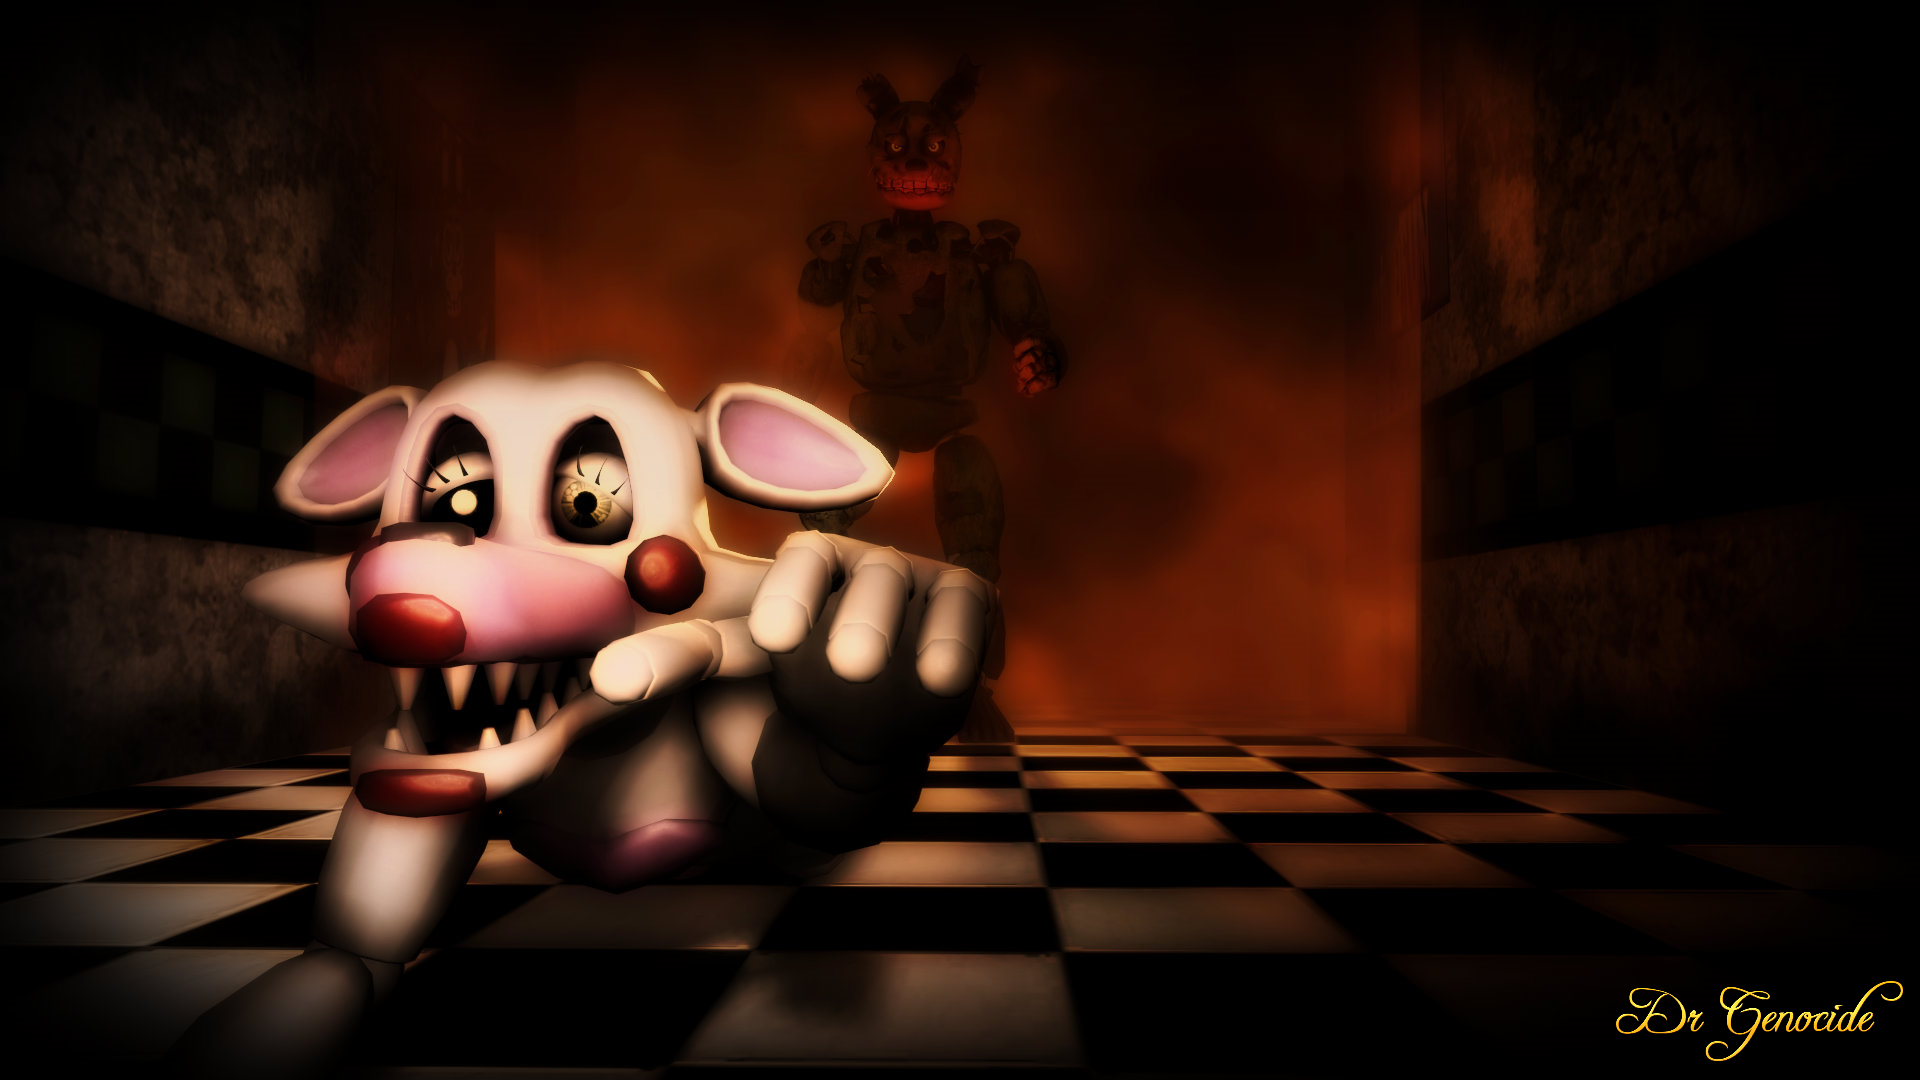 FNAF Springtrap vs Mangle Wallpaper by DrGenocideSFM 1920x1080